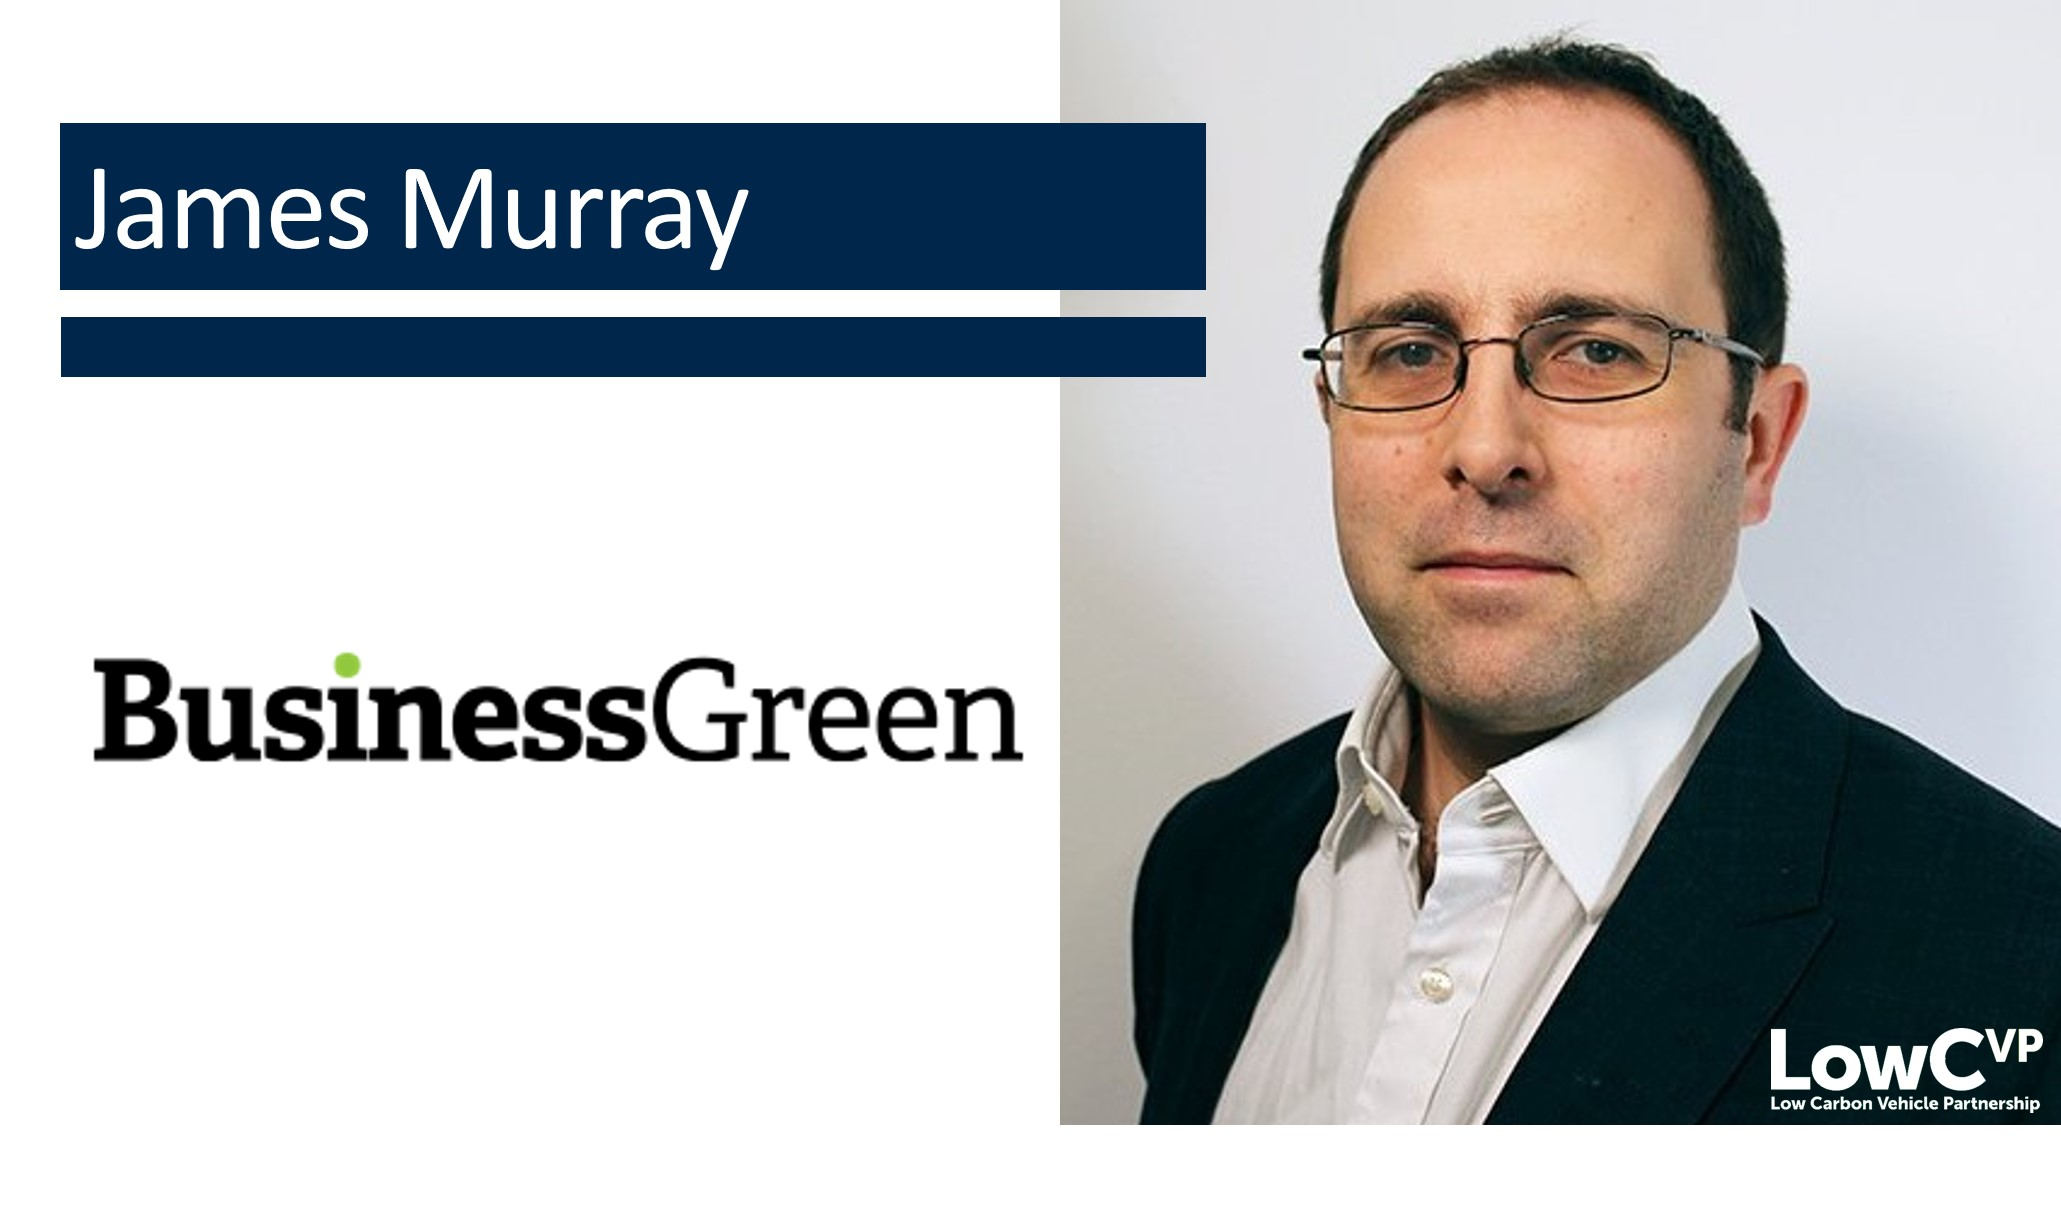 James Murray, Editor-in-Chief, Business Green